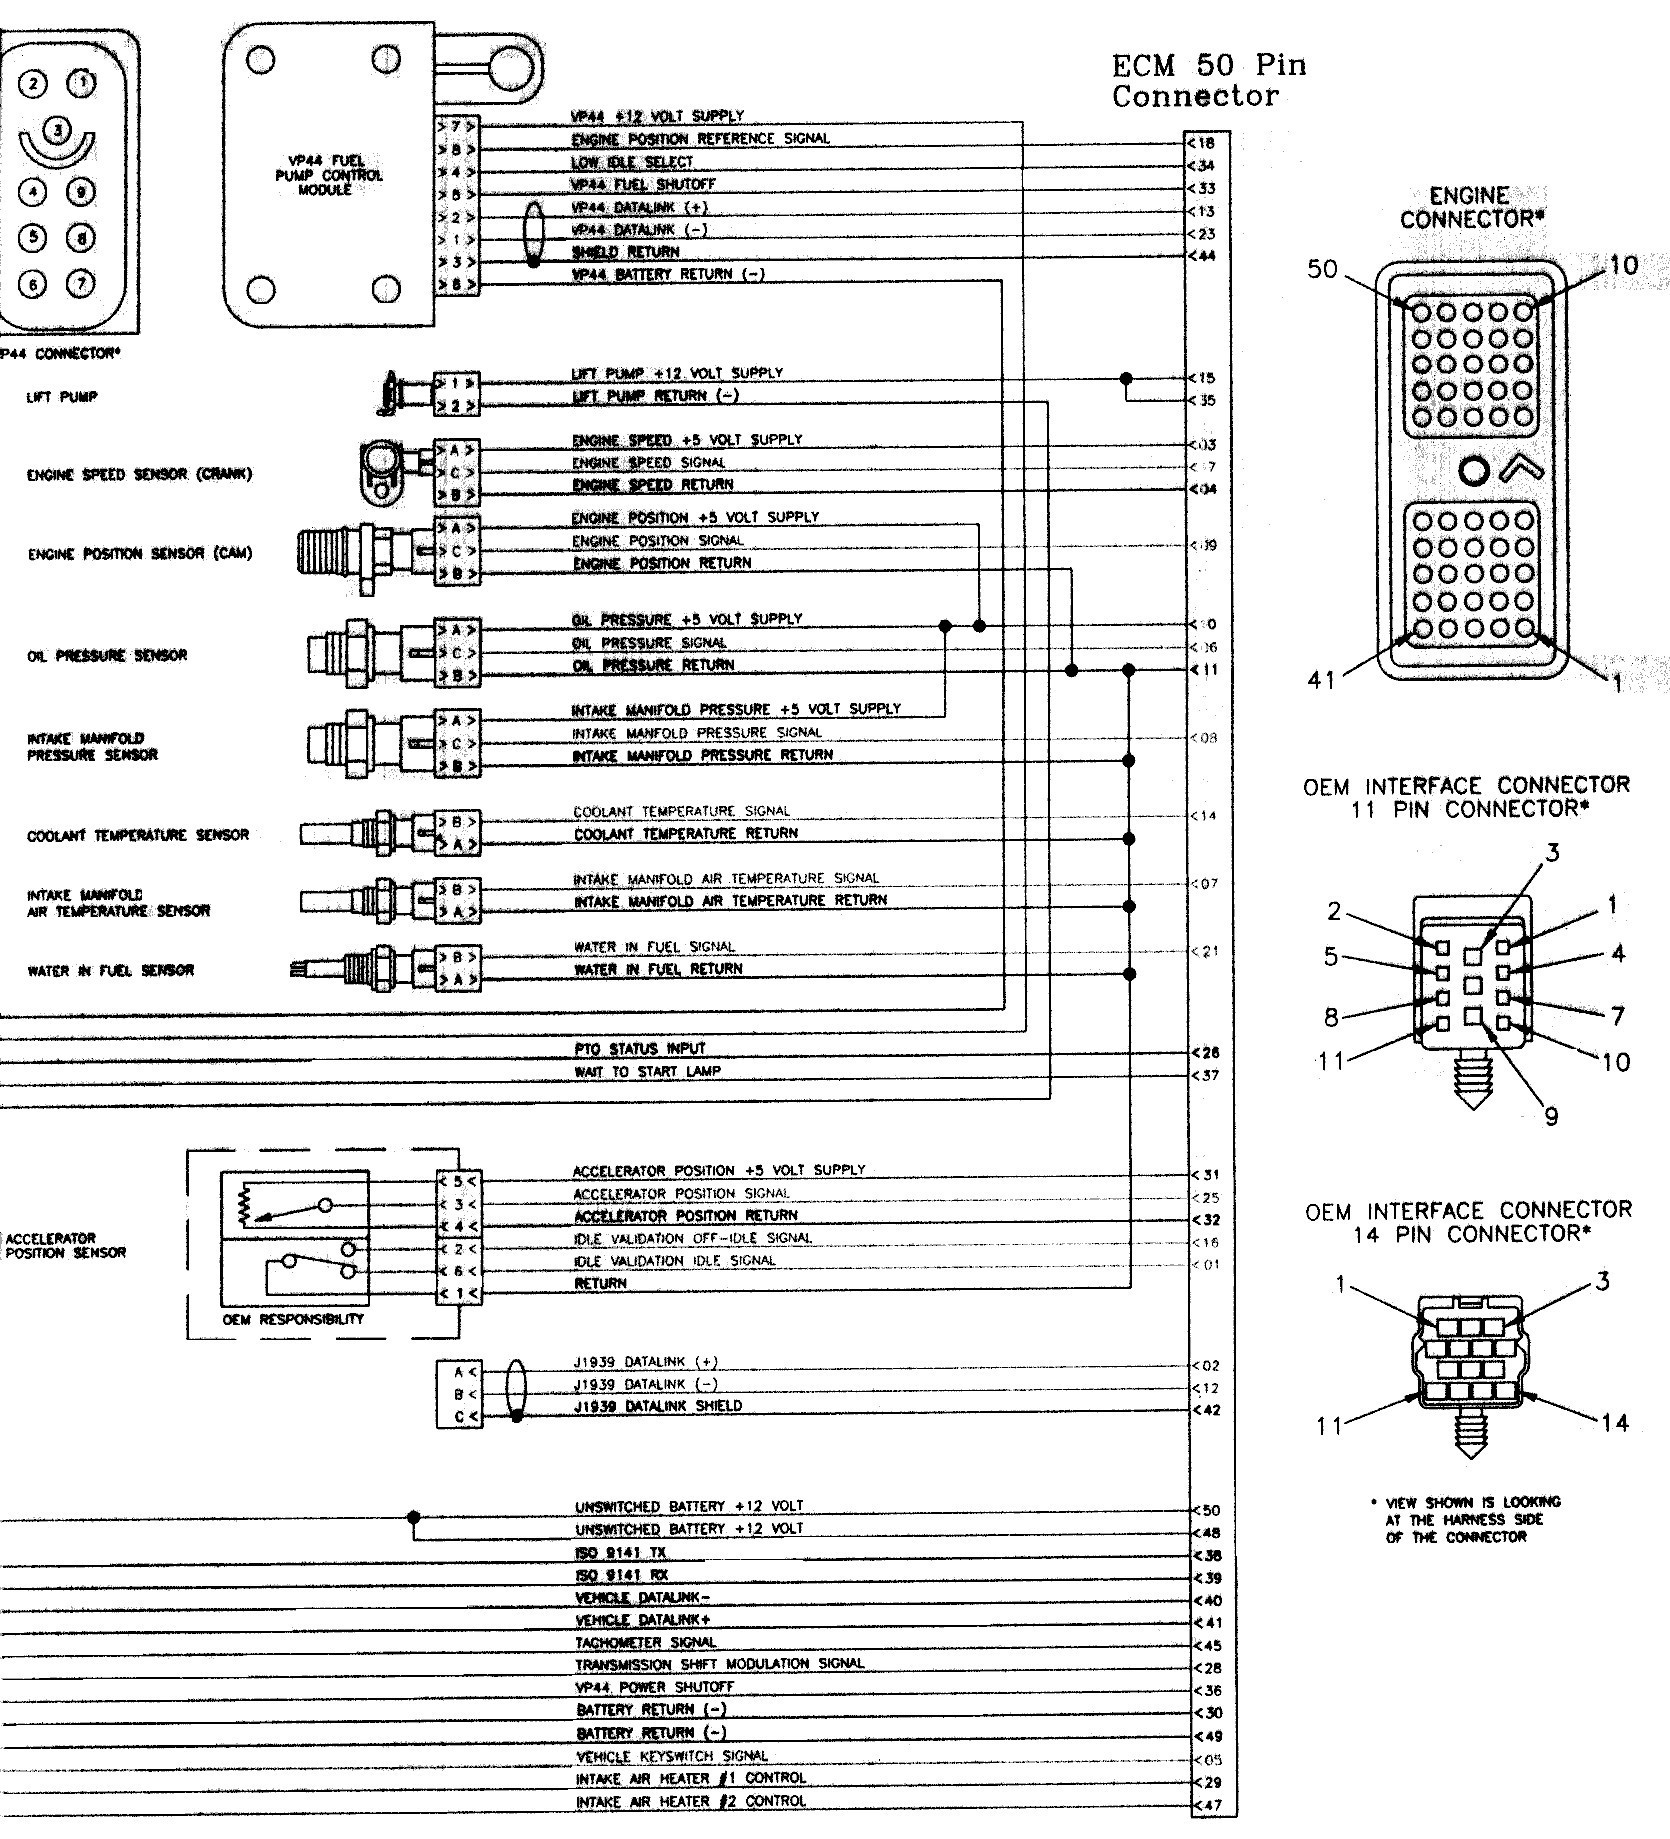 2002 dodge ram 1500 4 7 engine diagram 99 dodge ram 1500 radio 2002 dodge ram 1500 4 7 engine diagram 99 dodge ram 1500 radio wiring diagram new stereo wiring diagram for asfbconference2016 Image collections